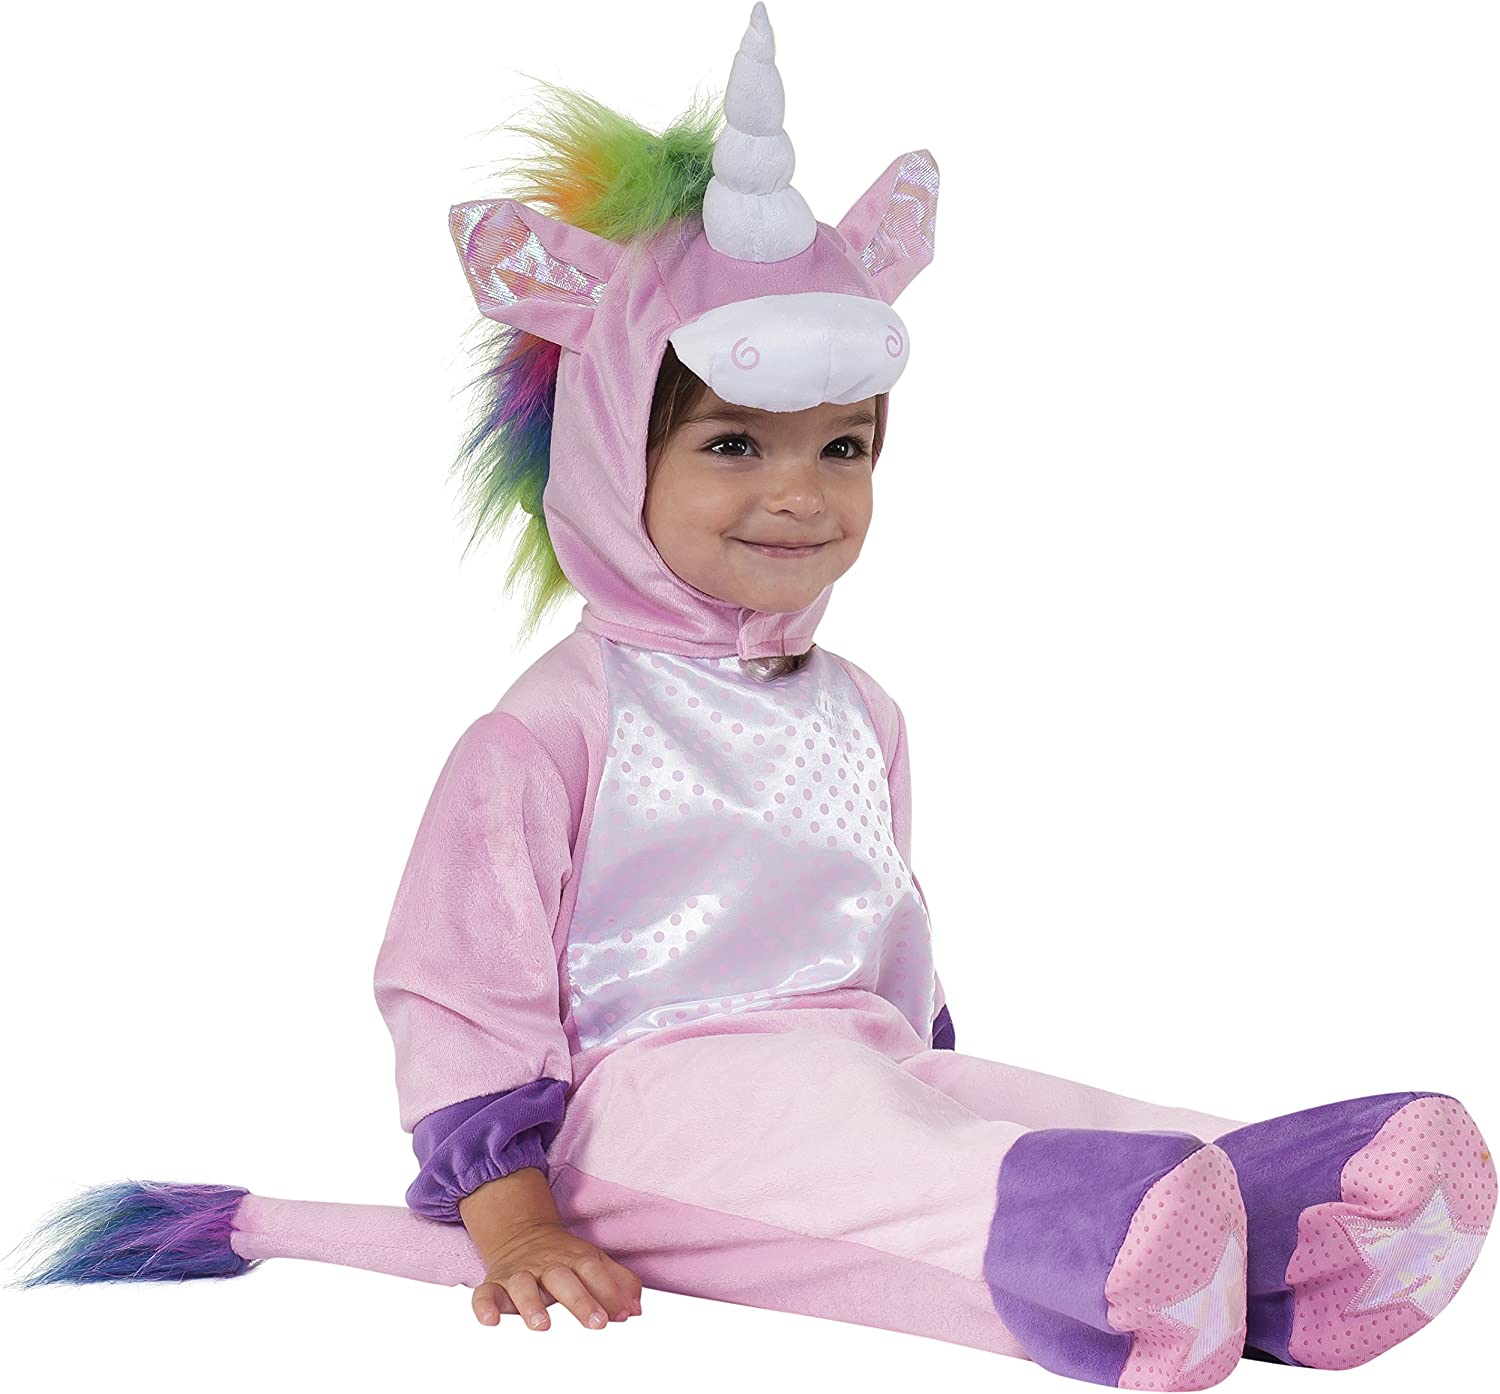 Amazon.com: Rubie s Costume Co del bebé Unicornio Disfraz ...